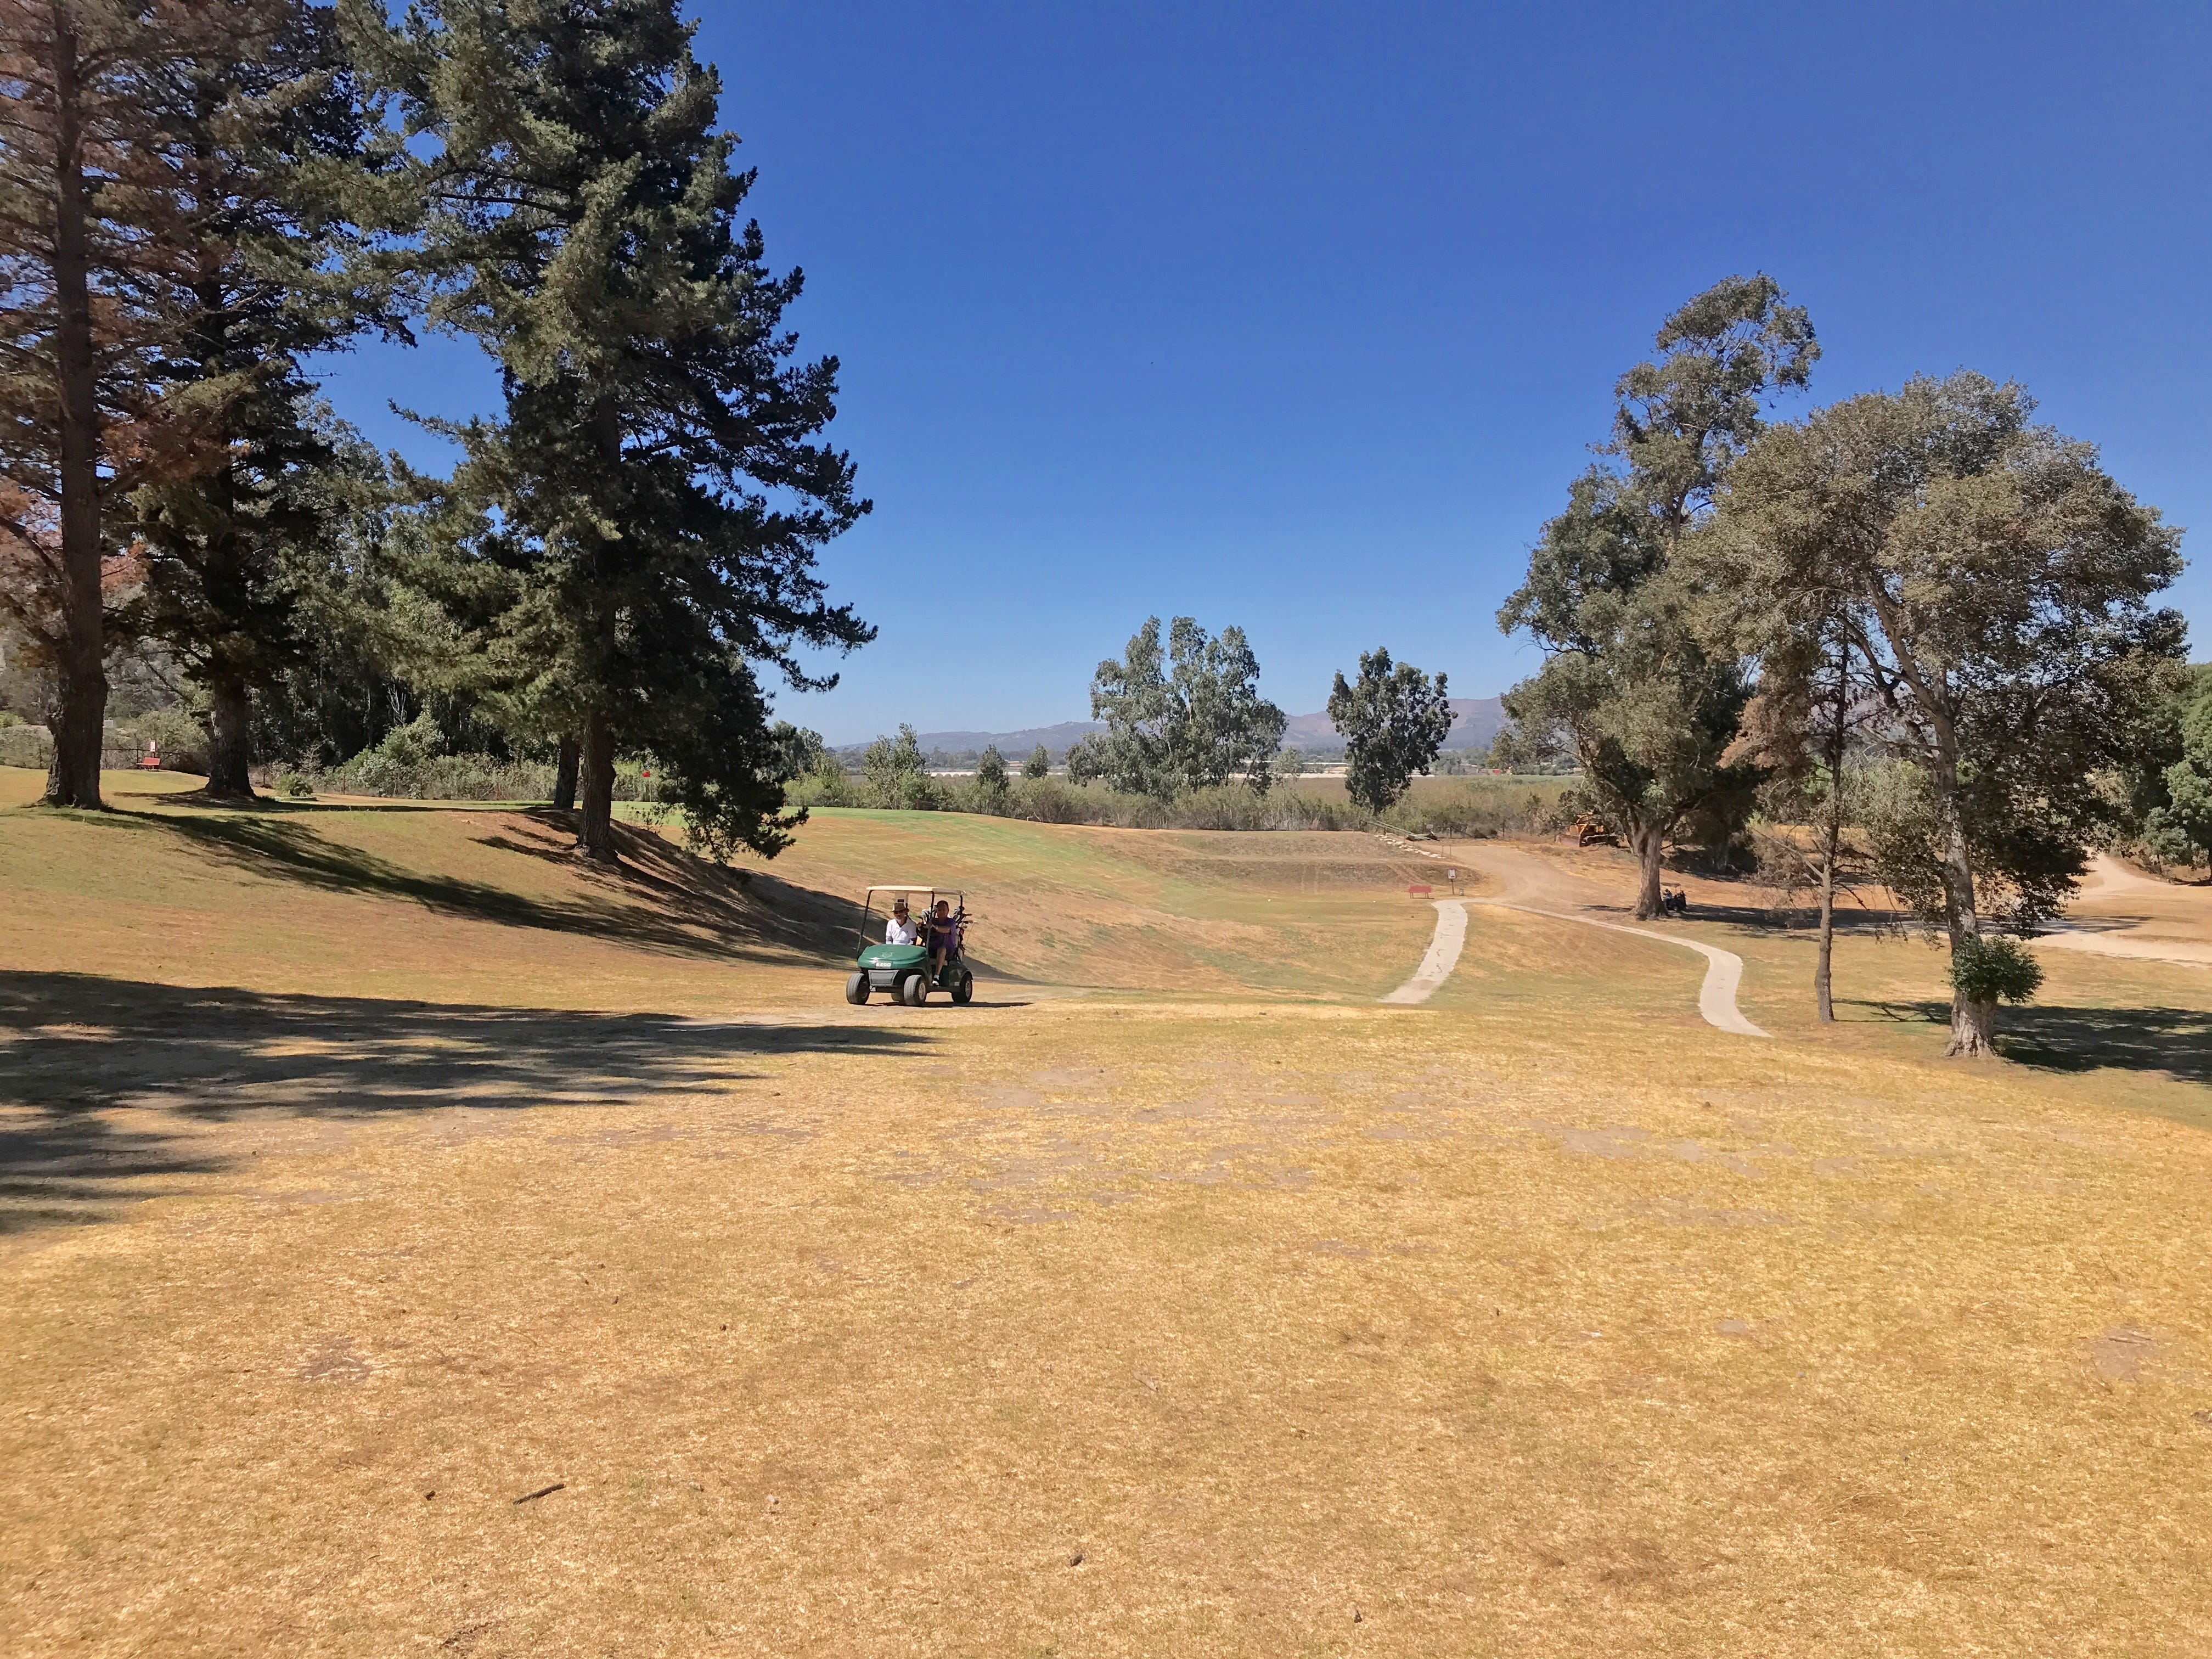 Local golf enthusiasts trundle up a brown fairway at the Mountain View Golf Course in Santa Paula, which is up for sale.